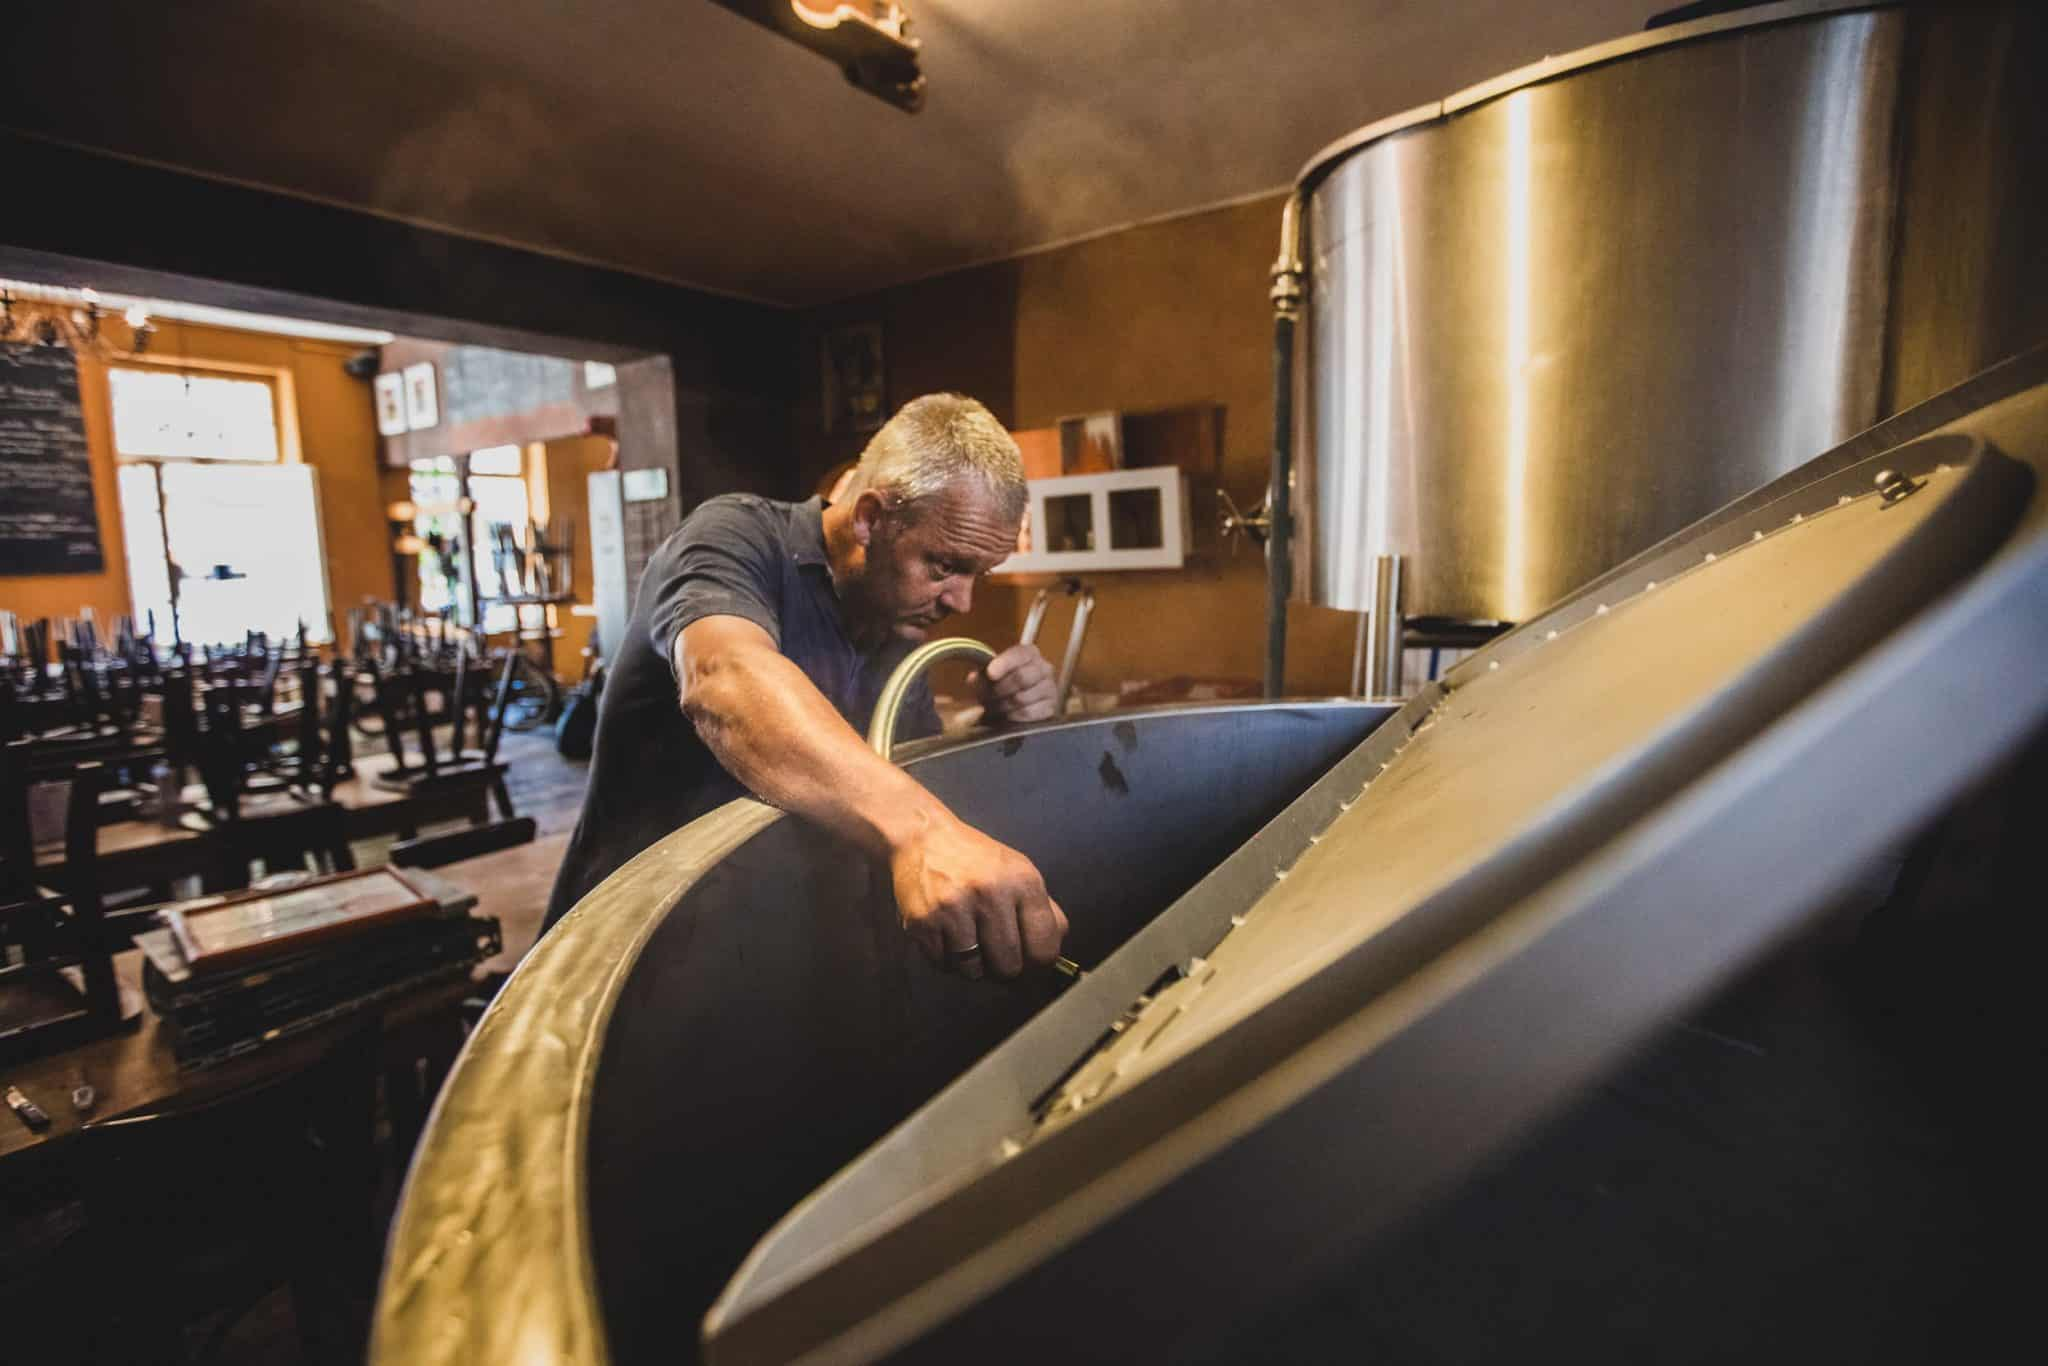 Helios Braustelle - brewing process photographed by Holger Altgeld